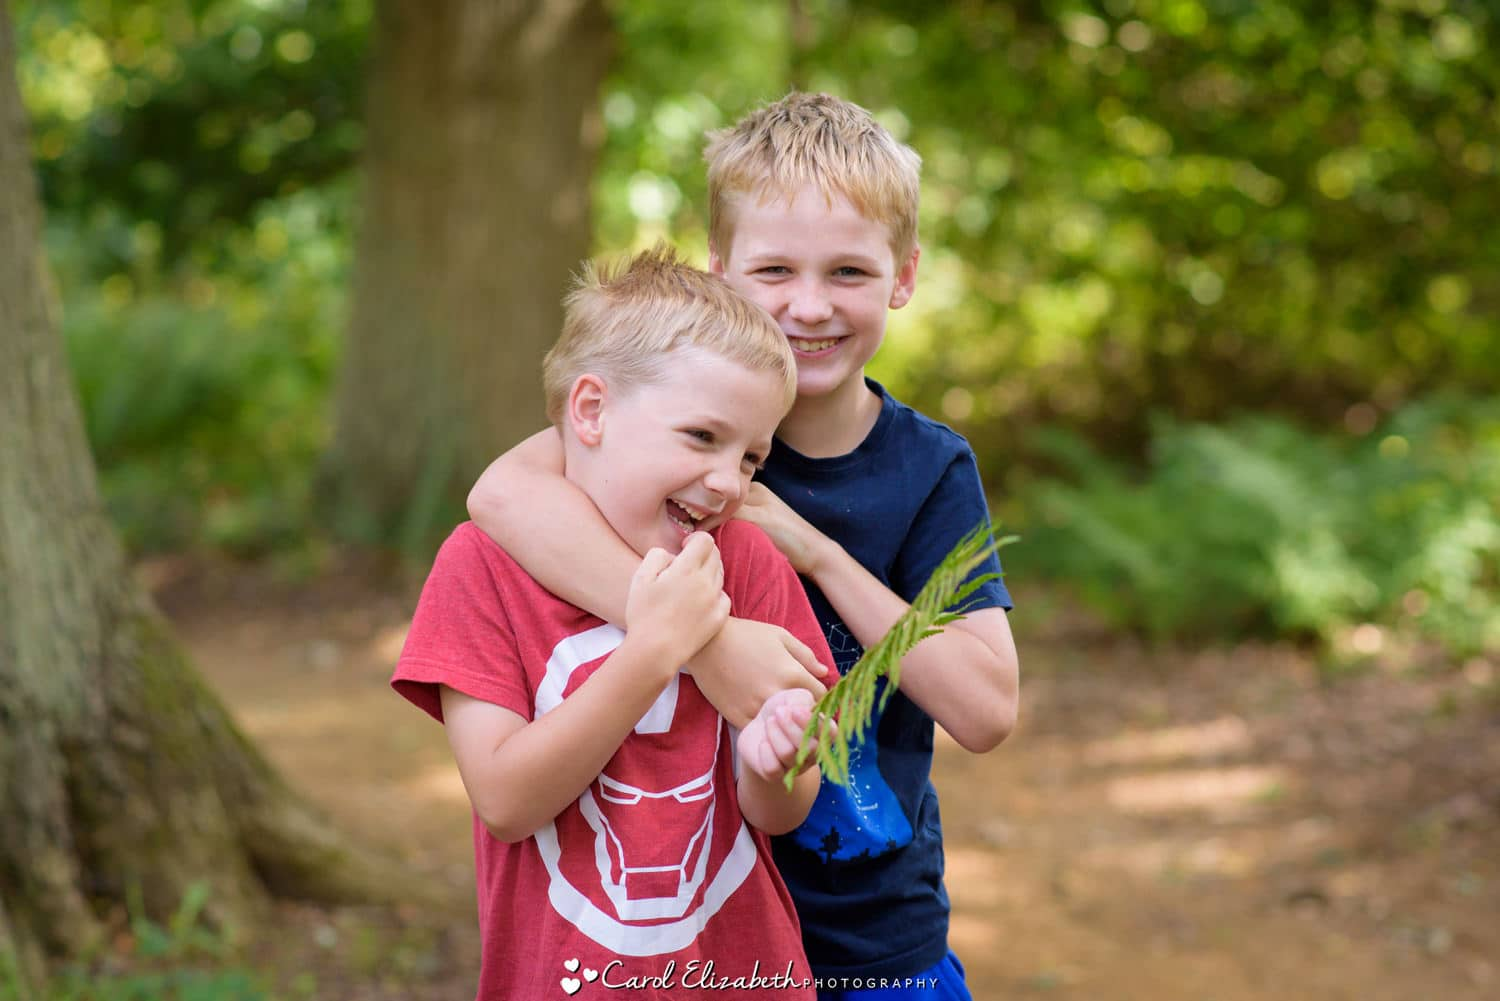 Oxfordshire outdoor photoshoots